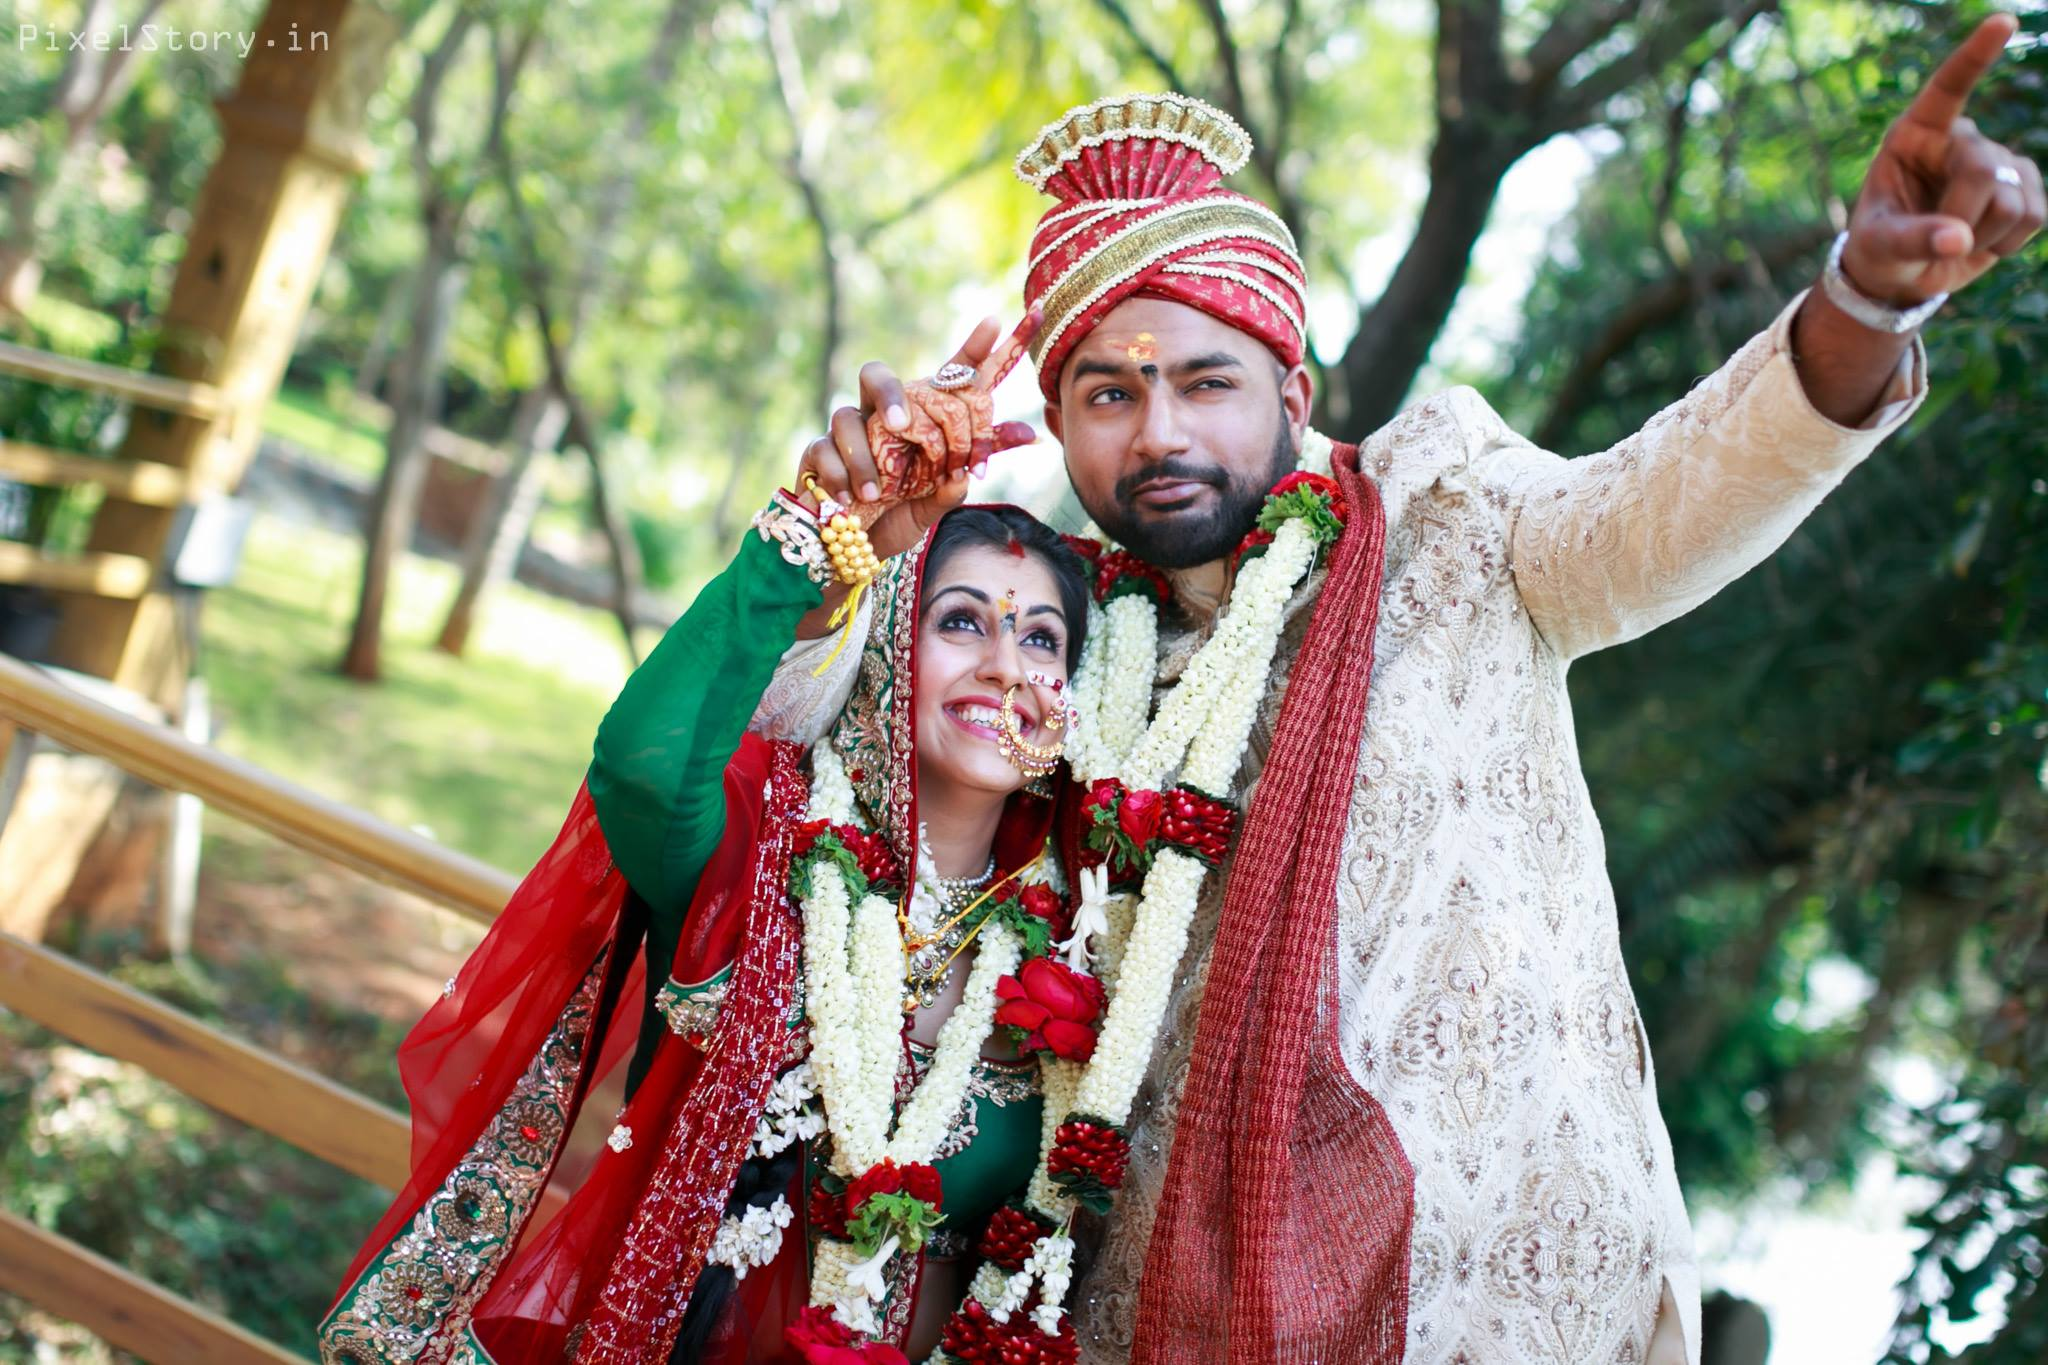 These are the 10 inimitable wedding customs that you can see only in Indian weddings